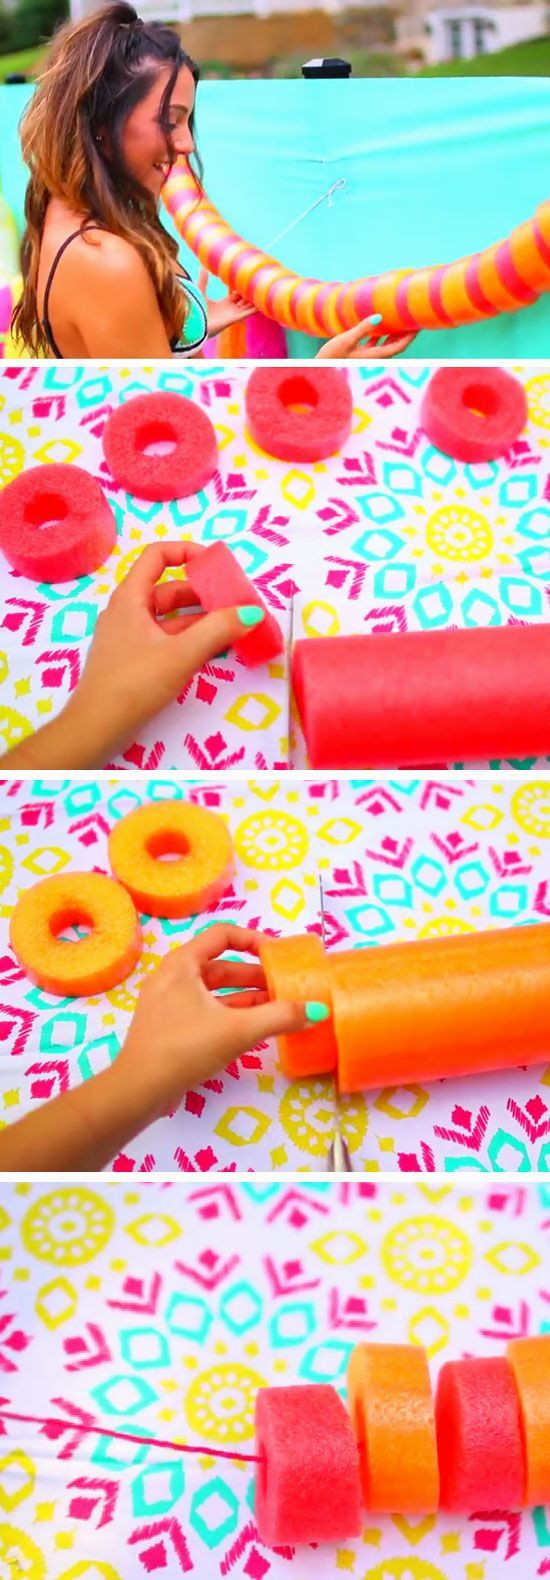 Summer Party Ideas For Teens  Best 25 Kid pool parties ideas only on Pinterest